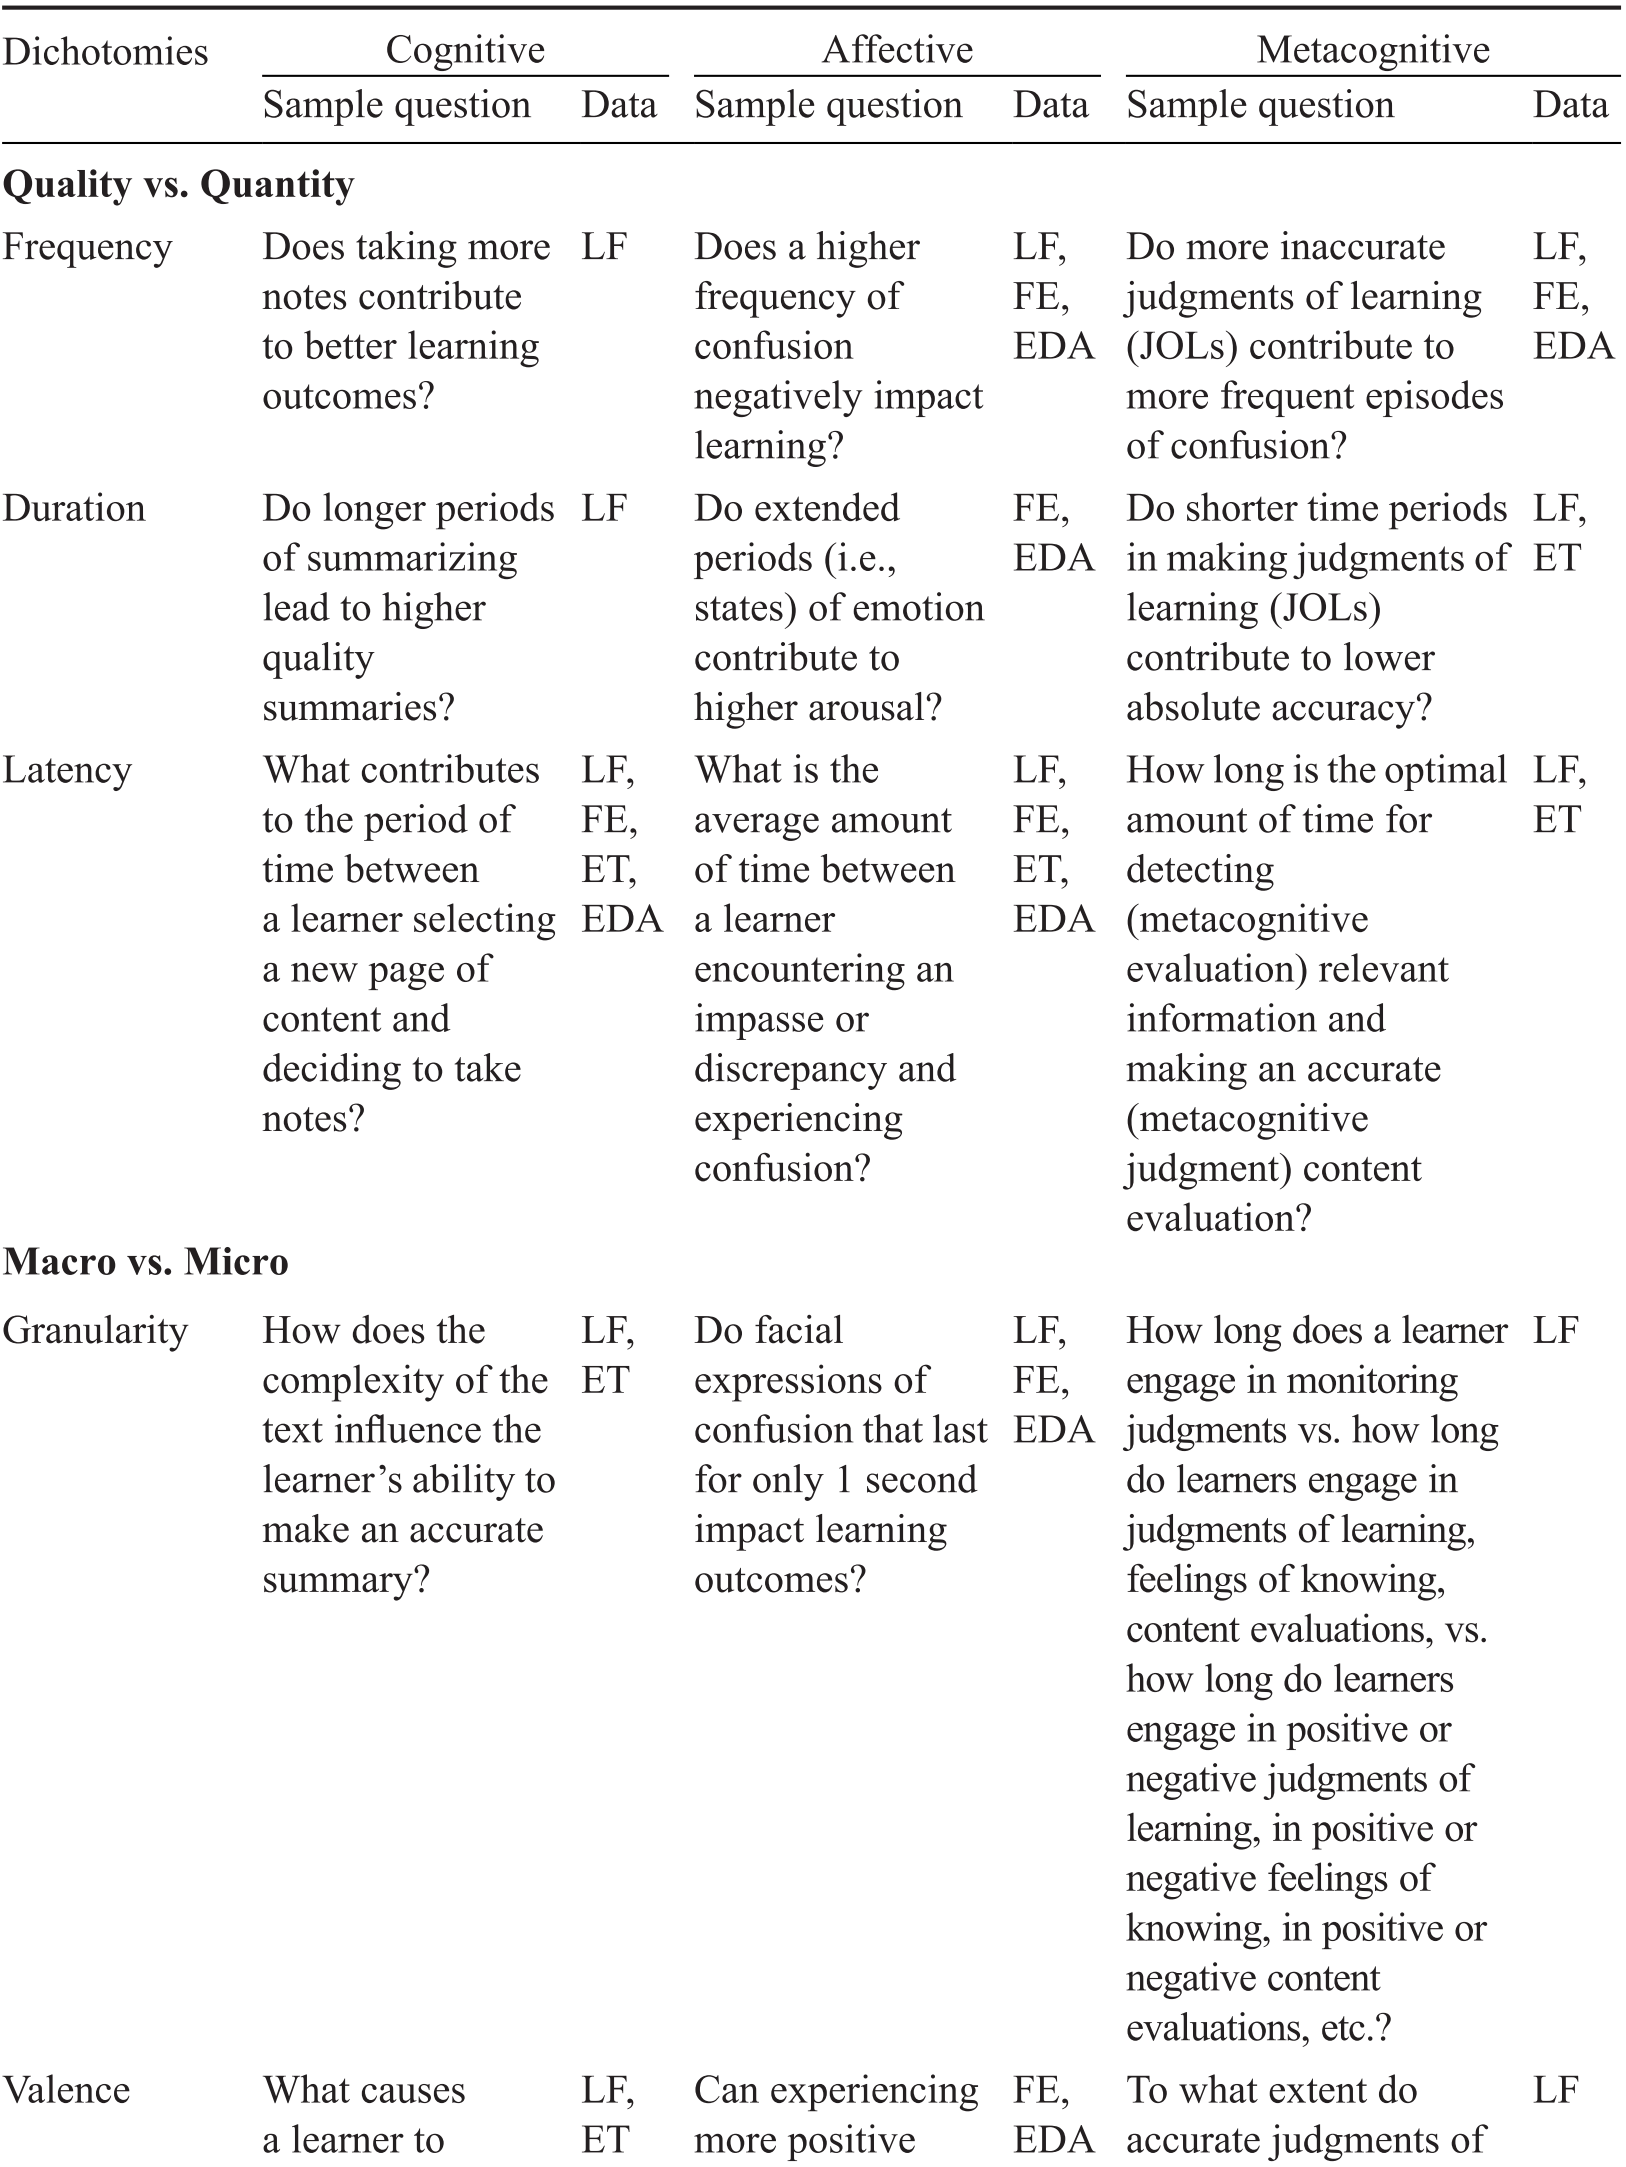 medium resolution of Metacognition (Part V) - The Cambridge Handbook of Cognition and Education